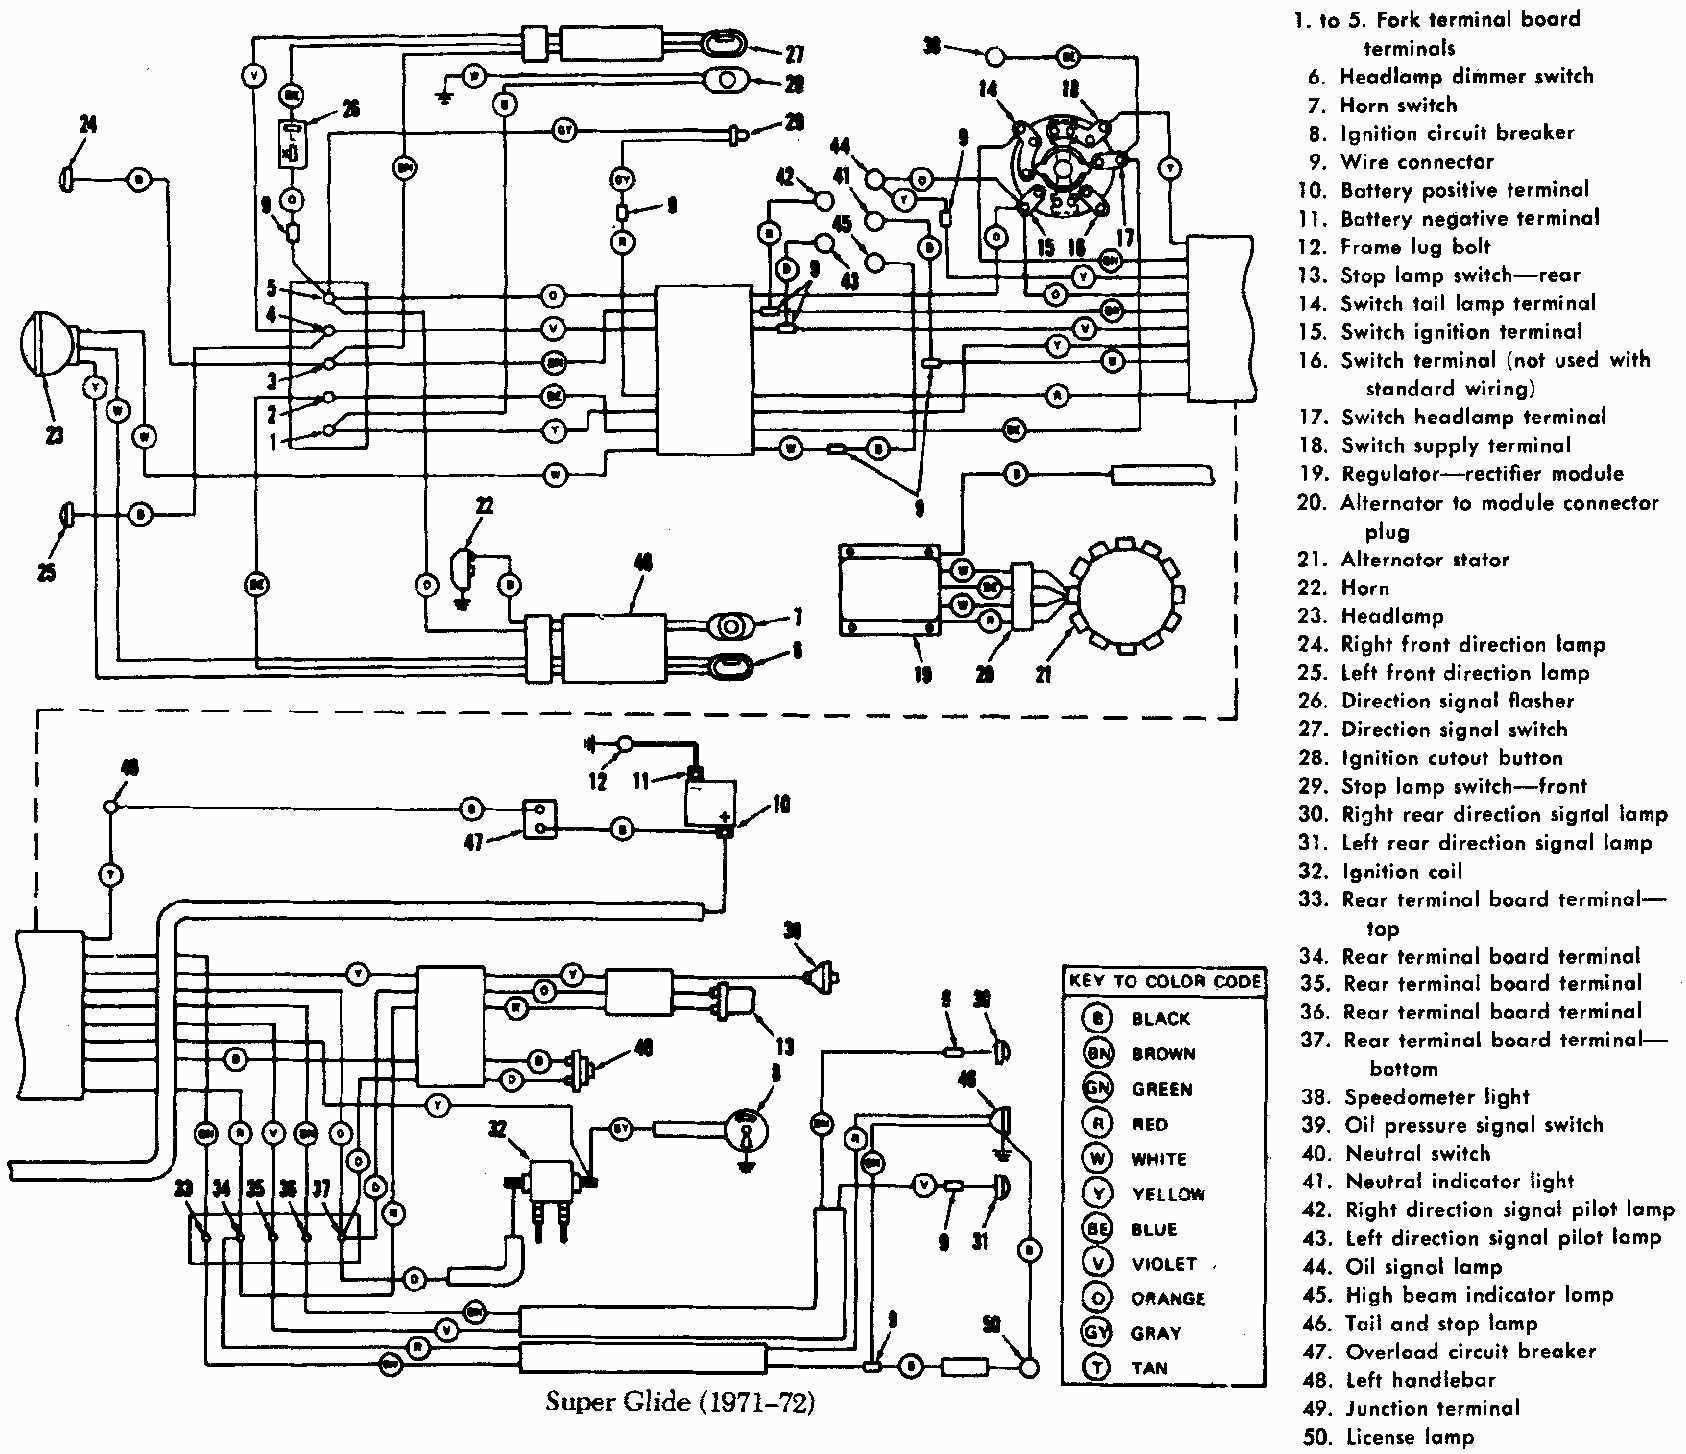 1971 Chevelle Wiring Diagram 66 Chevelle Wiring Diagram Wiring Diagram toolbox Of 1971 Chevelle Wiring Diagram 1971 Chevy 4×4 Wiring Diagram Wiring Diagram Datasource